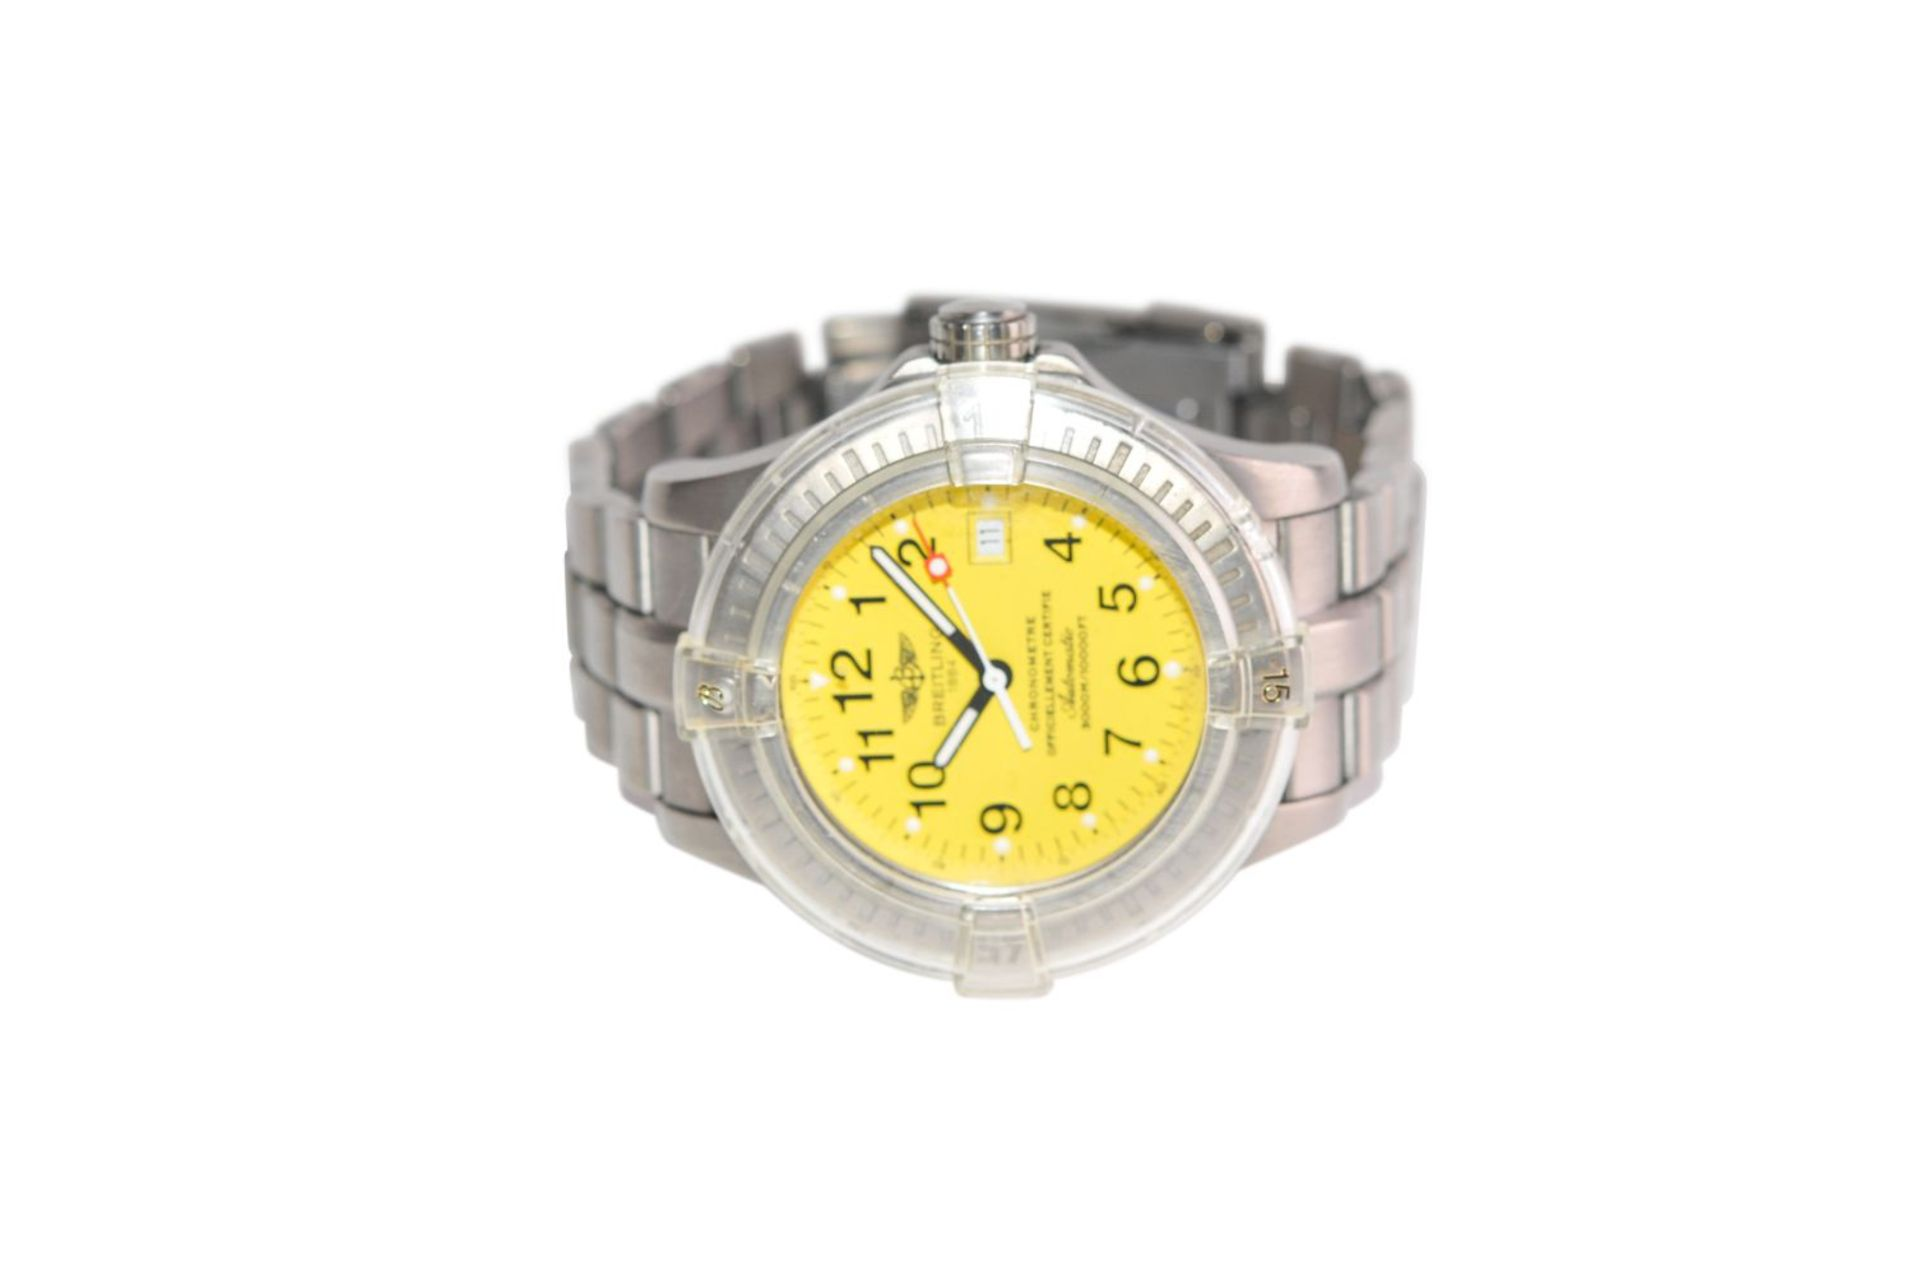 Los 20 - Breitling Avenger II Seawolf45mm steel watch with automatic movement cobra yellow dial with steel